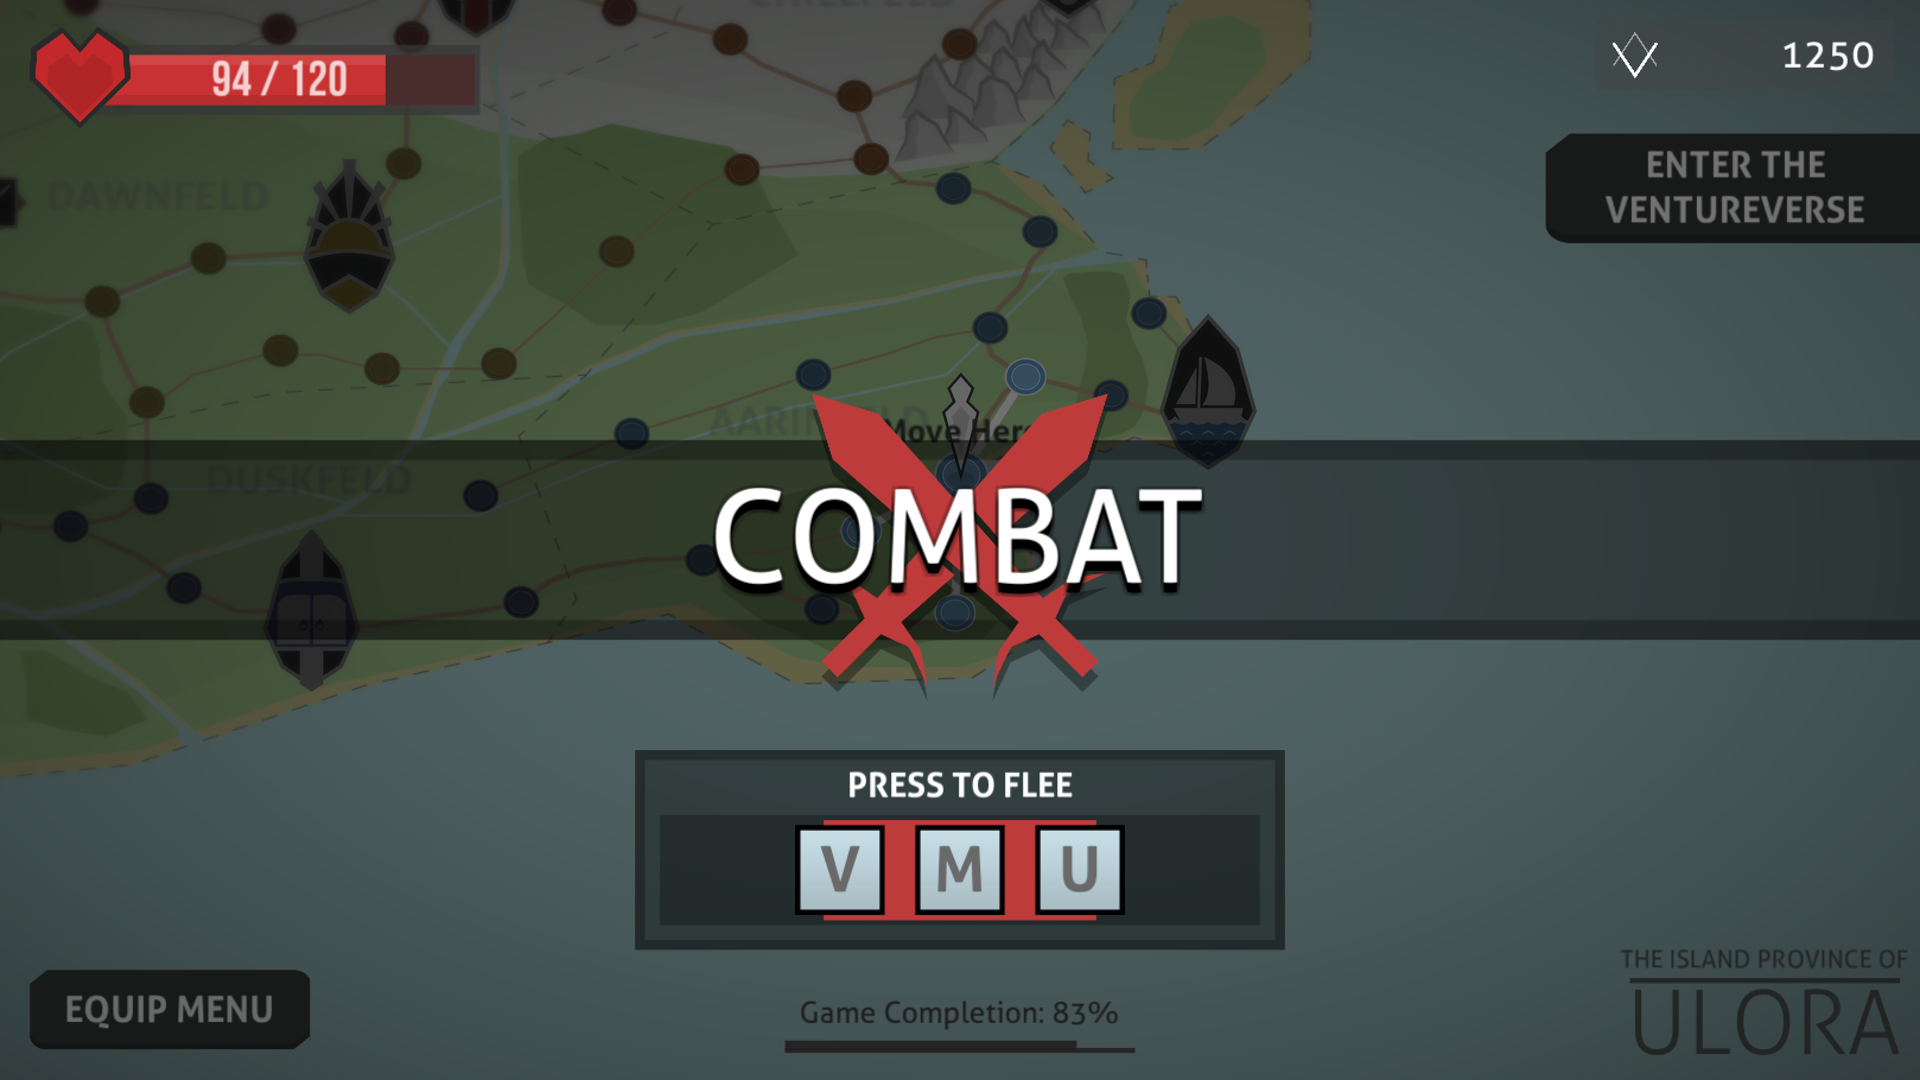 The most common type of map screen event is combat. You are taken to a small map with a few enemies and you win the event when you kill them all. When the event pops up, you have a small window in which you can flee by pressing 3 random buttons in order.